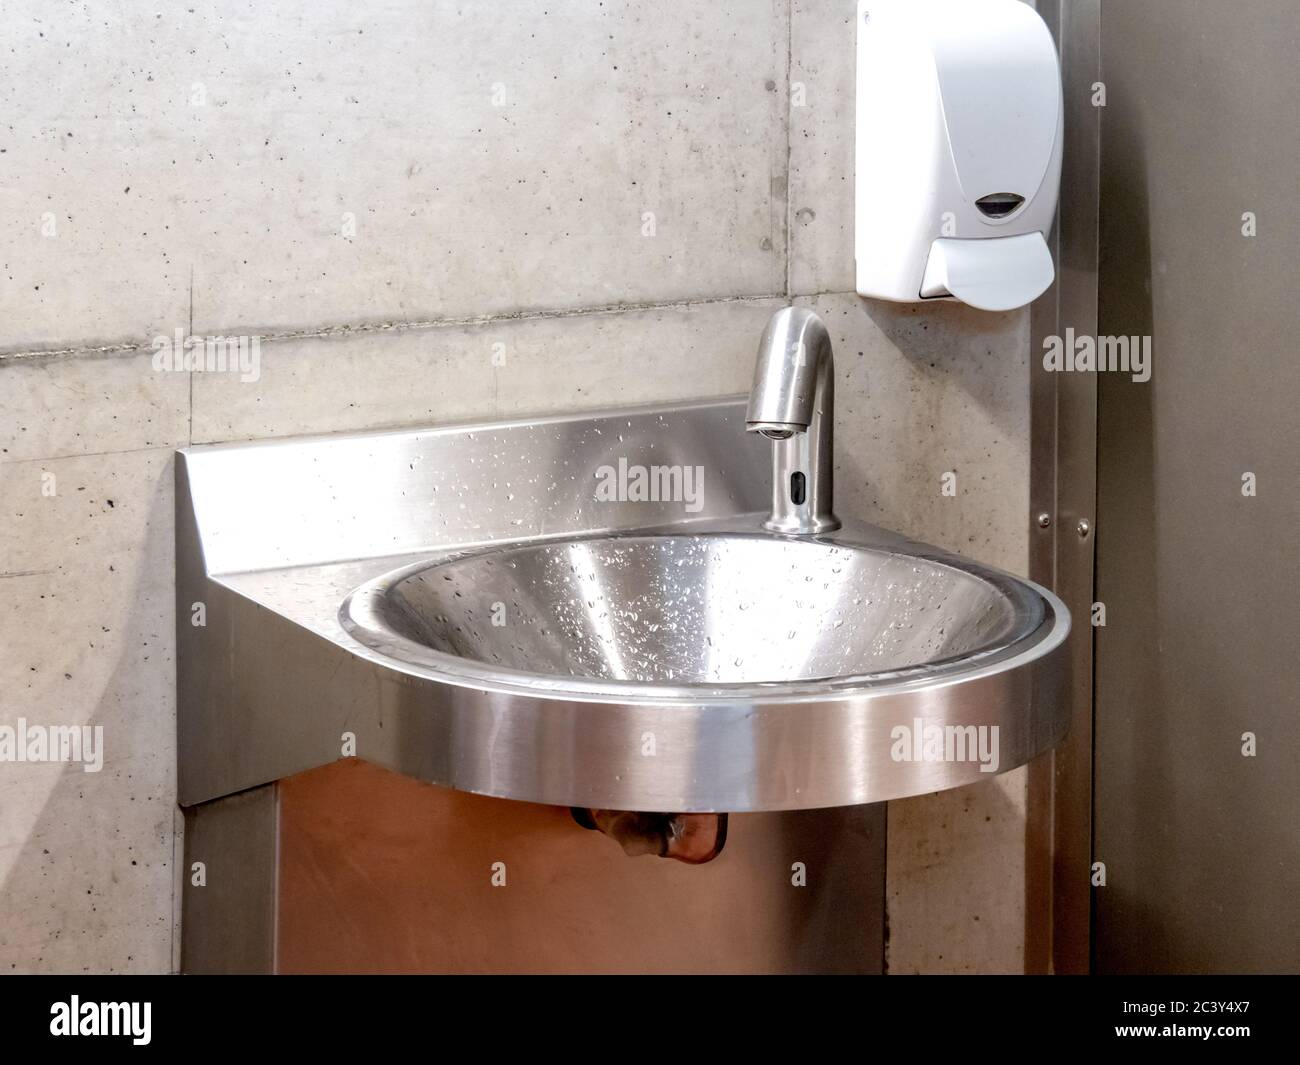 https www alamy com a stainless steel metal hand washing sink with hands free faucet as might be found in a factory or public washroom image363858271 html